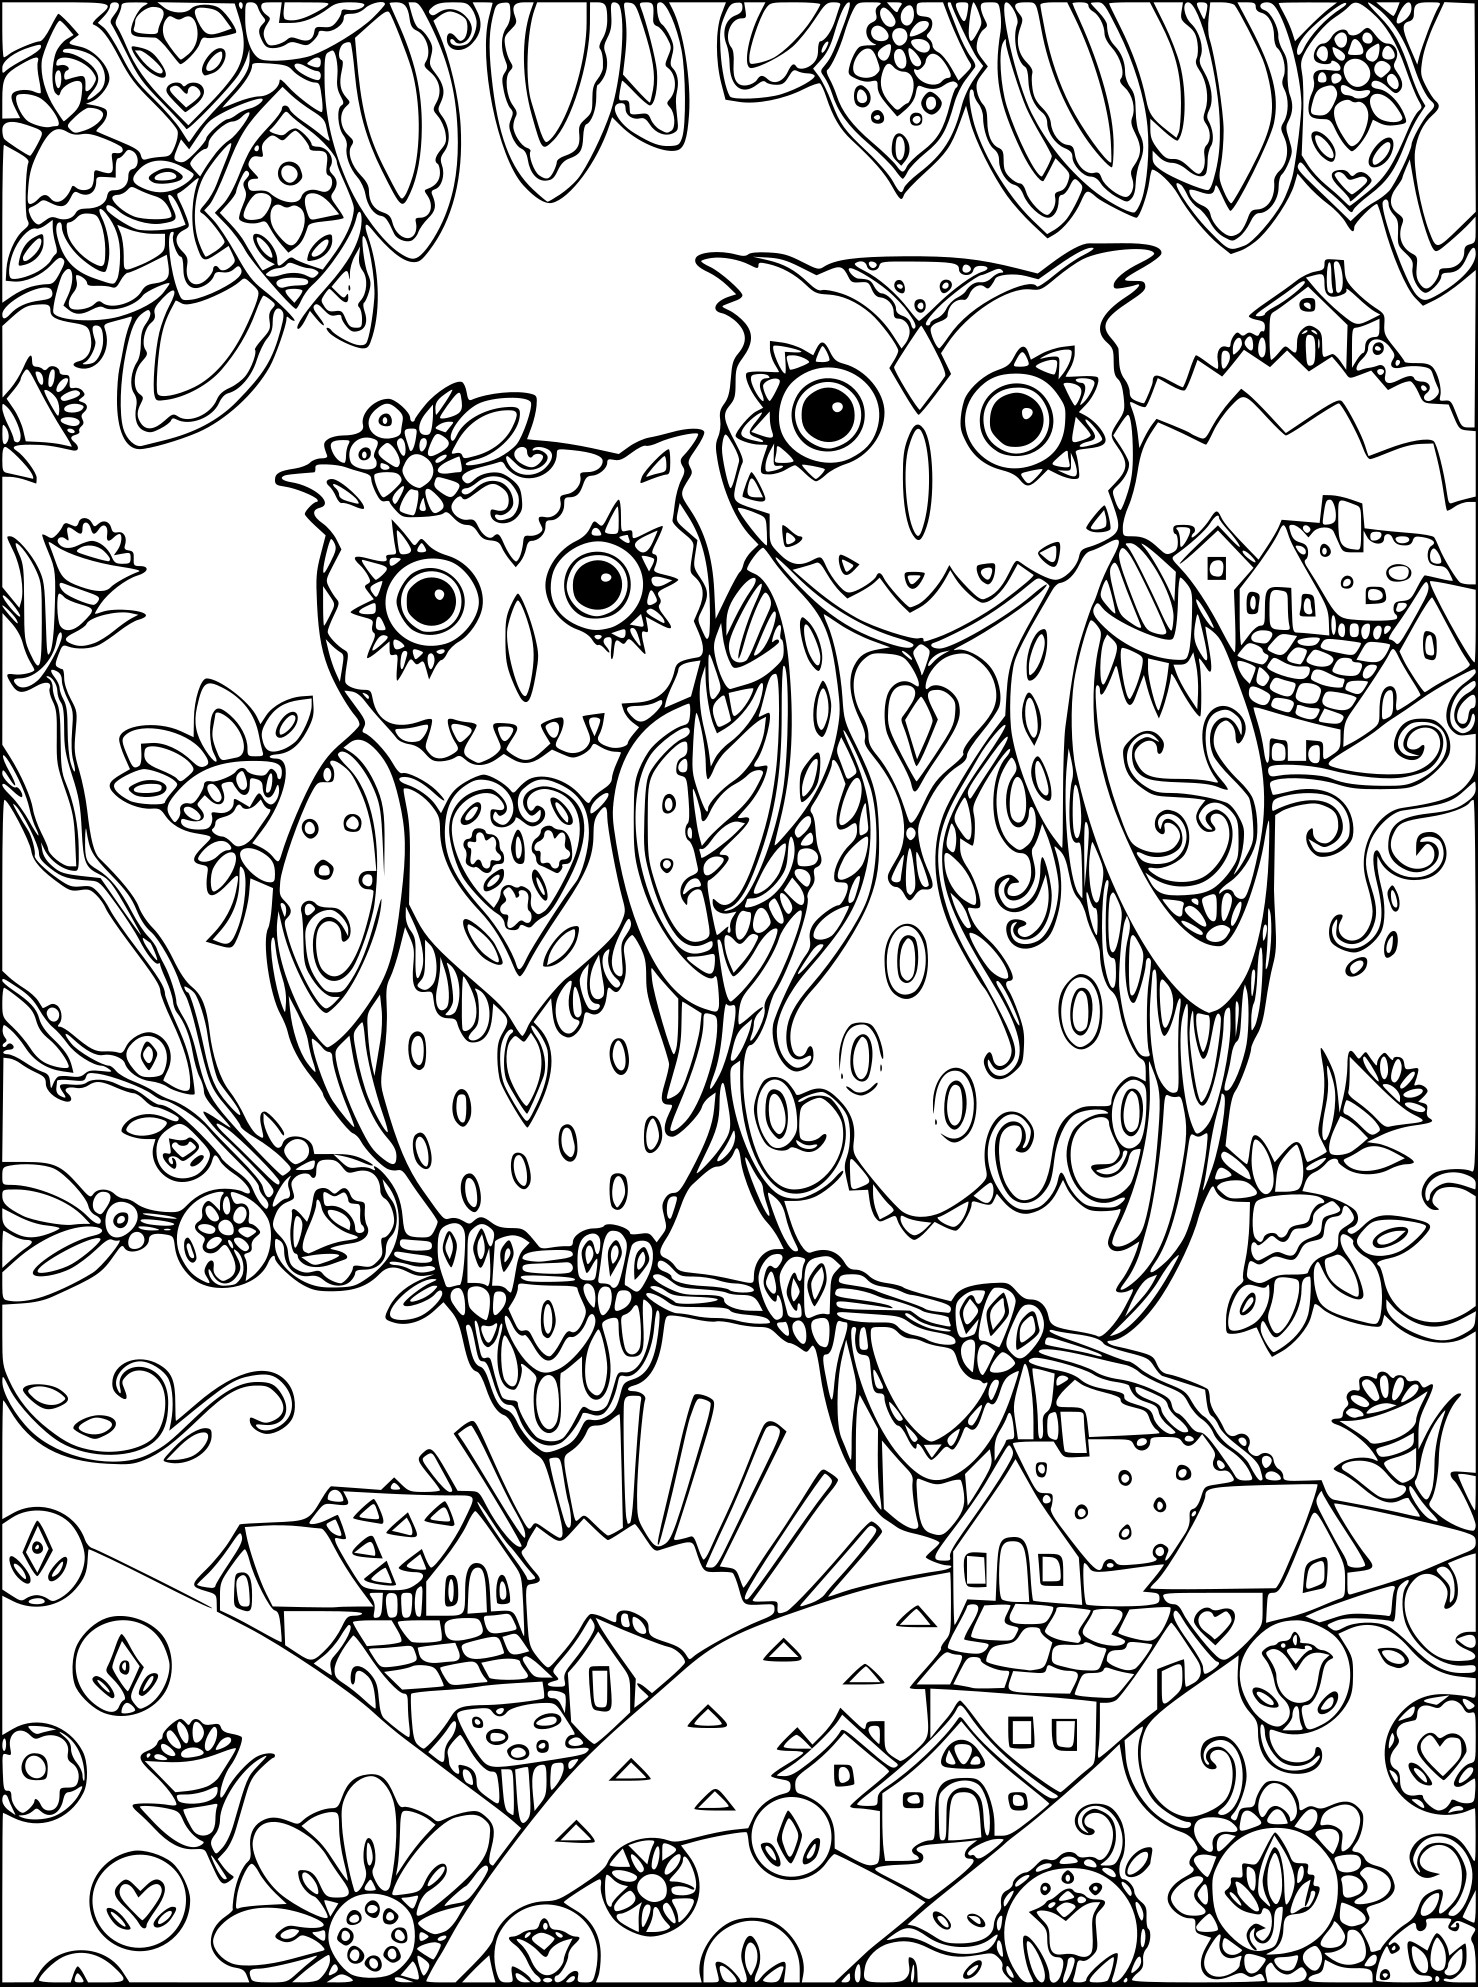 Agréable Coloriage Chouette Adulte 15 Pour Coloriage Pages with Coloriage Chouette Adulte